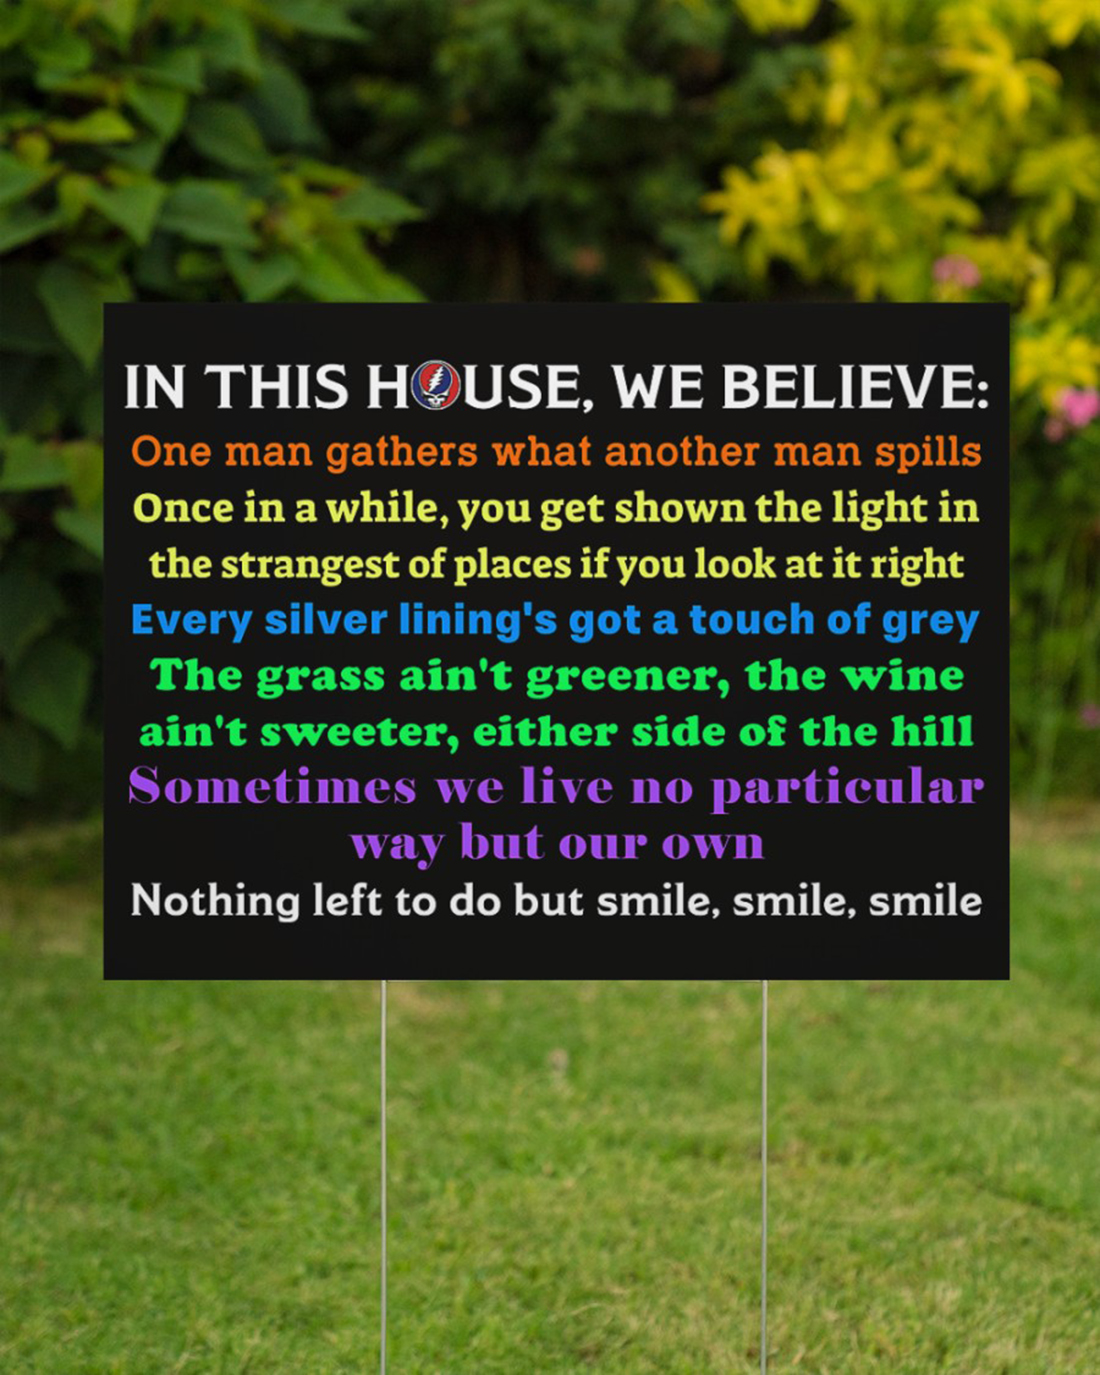 Grateful Dead In this house we believe one man gathers what another man spills yard sign